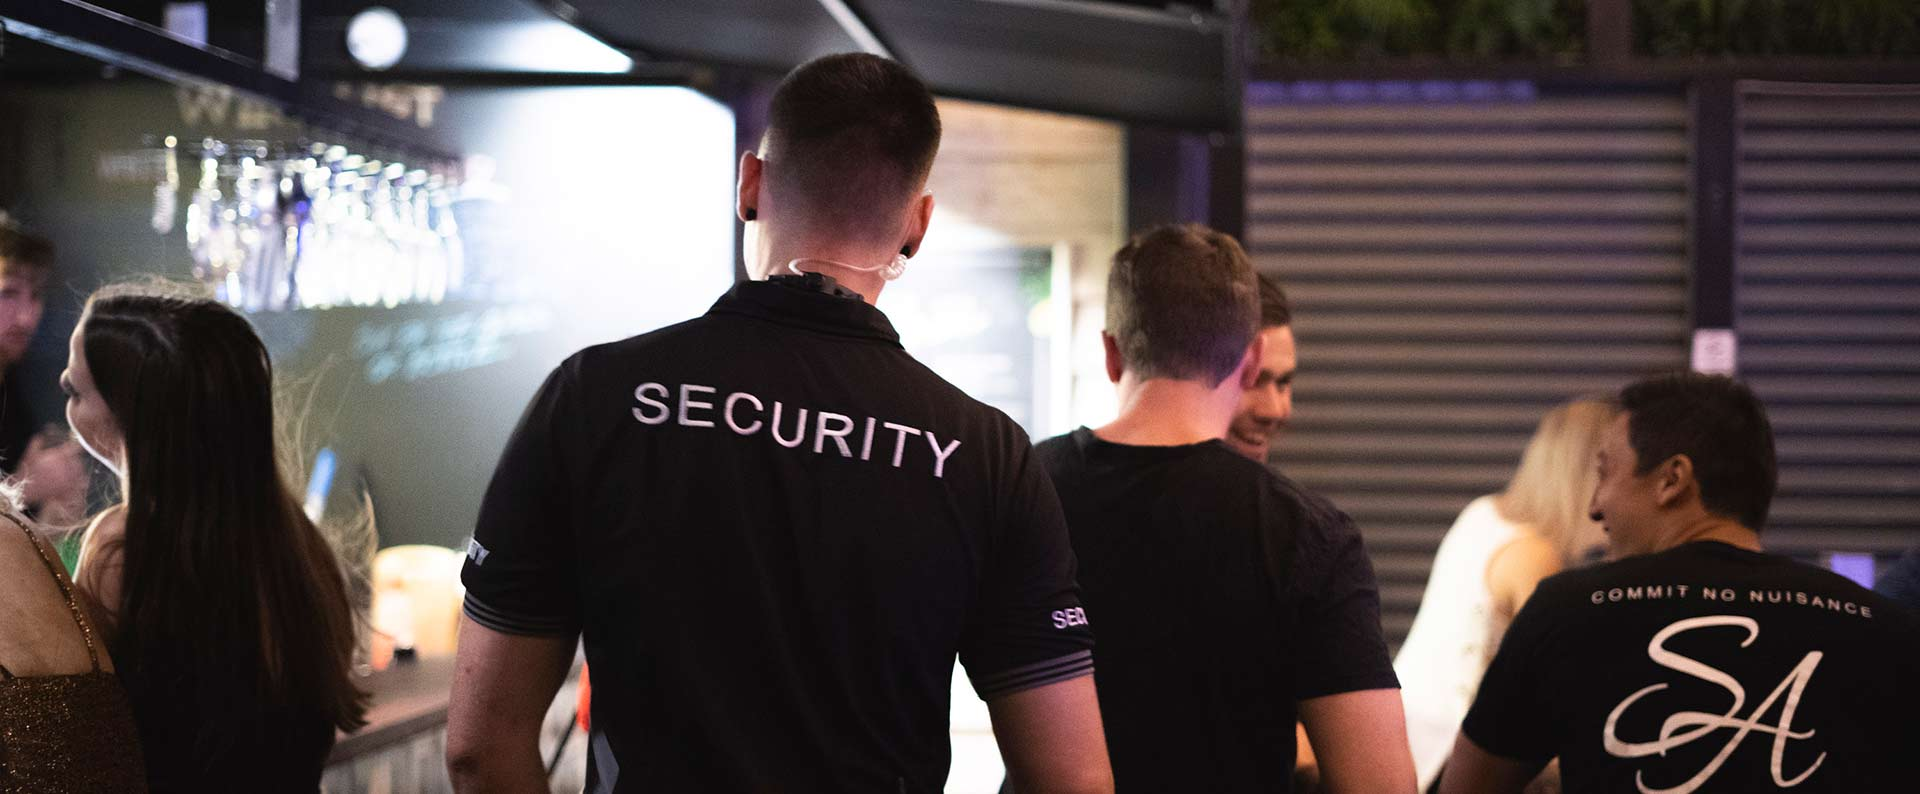 Body Guards and Personal Protection